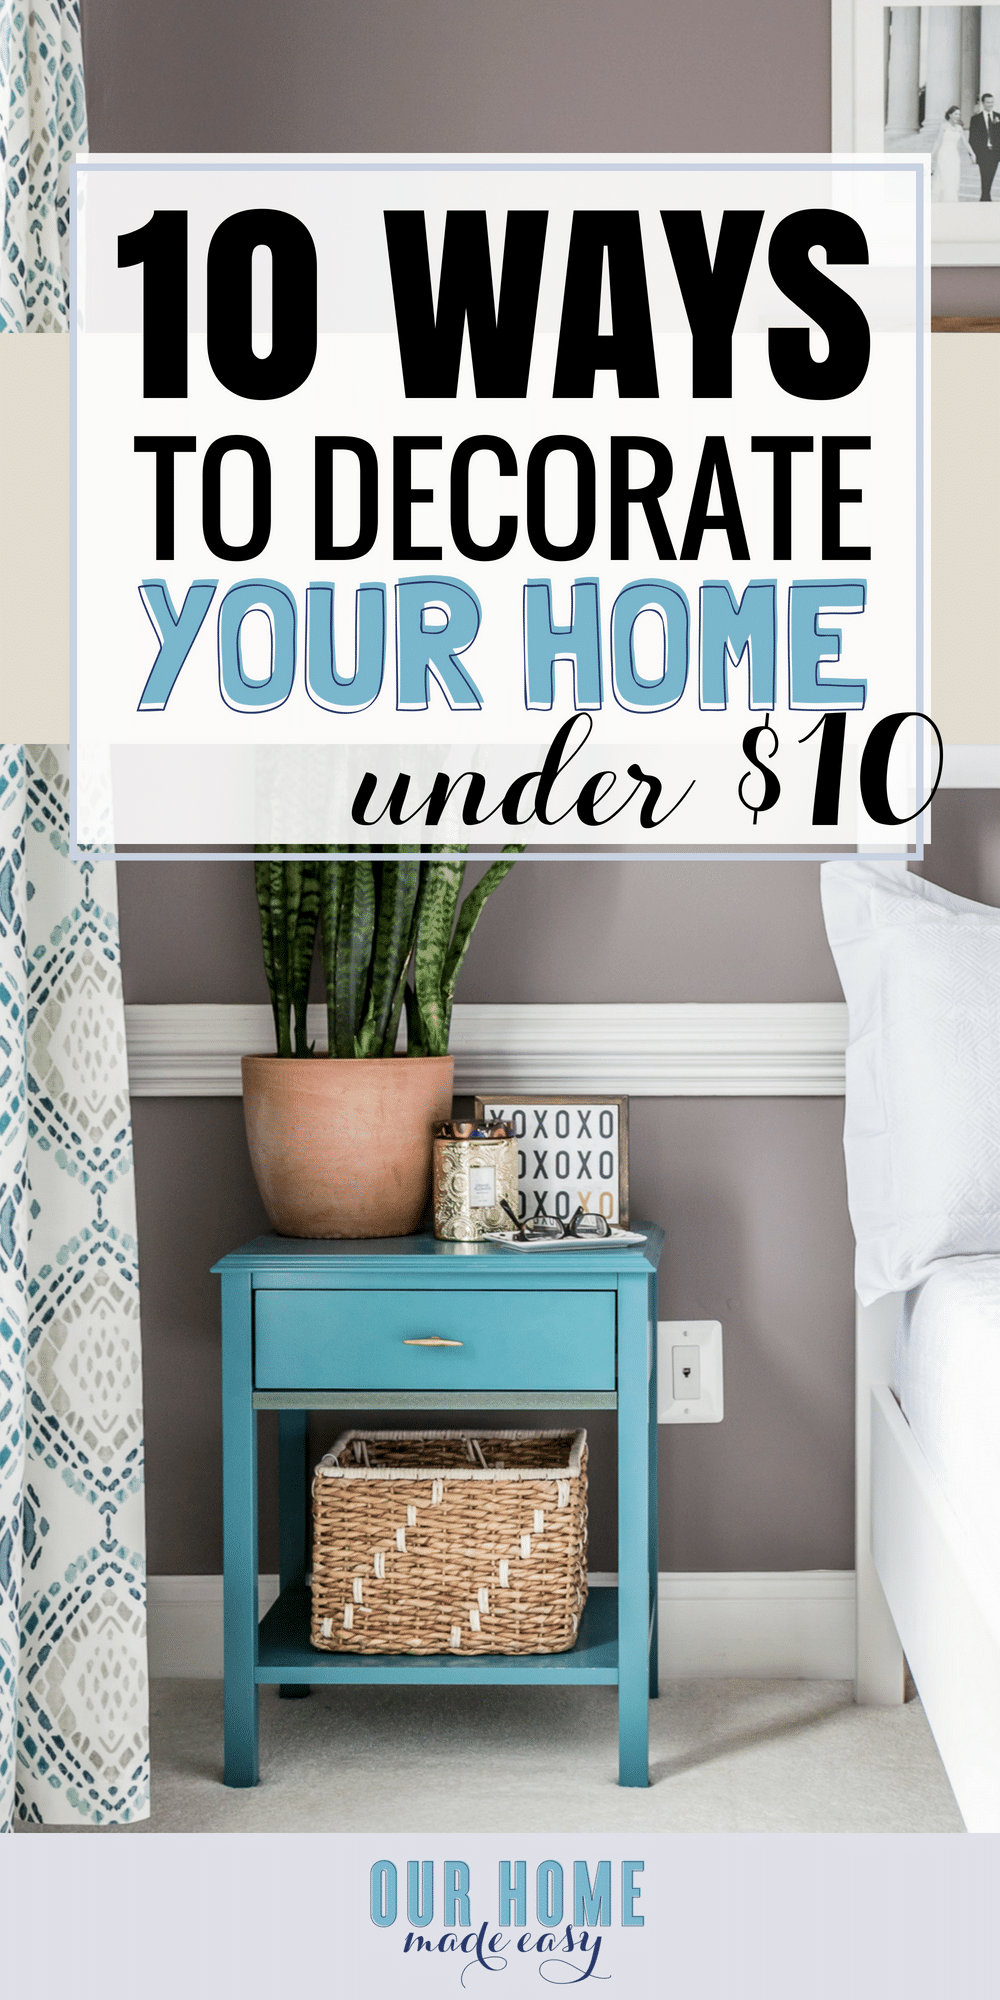 Check out these easy ways to decorate